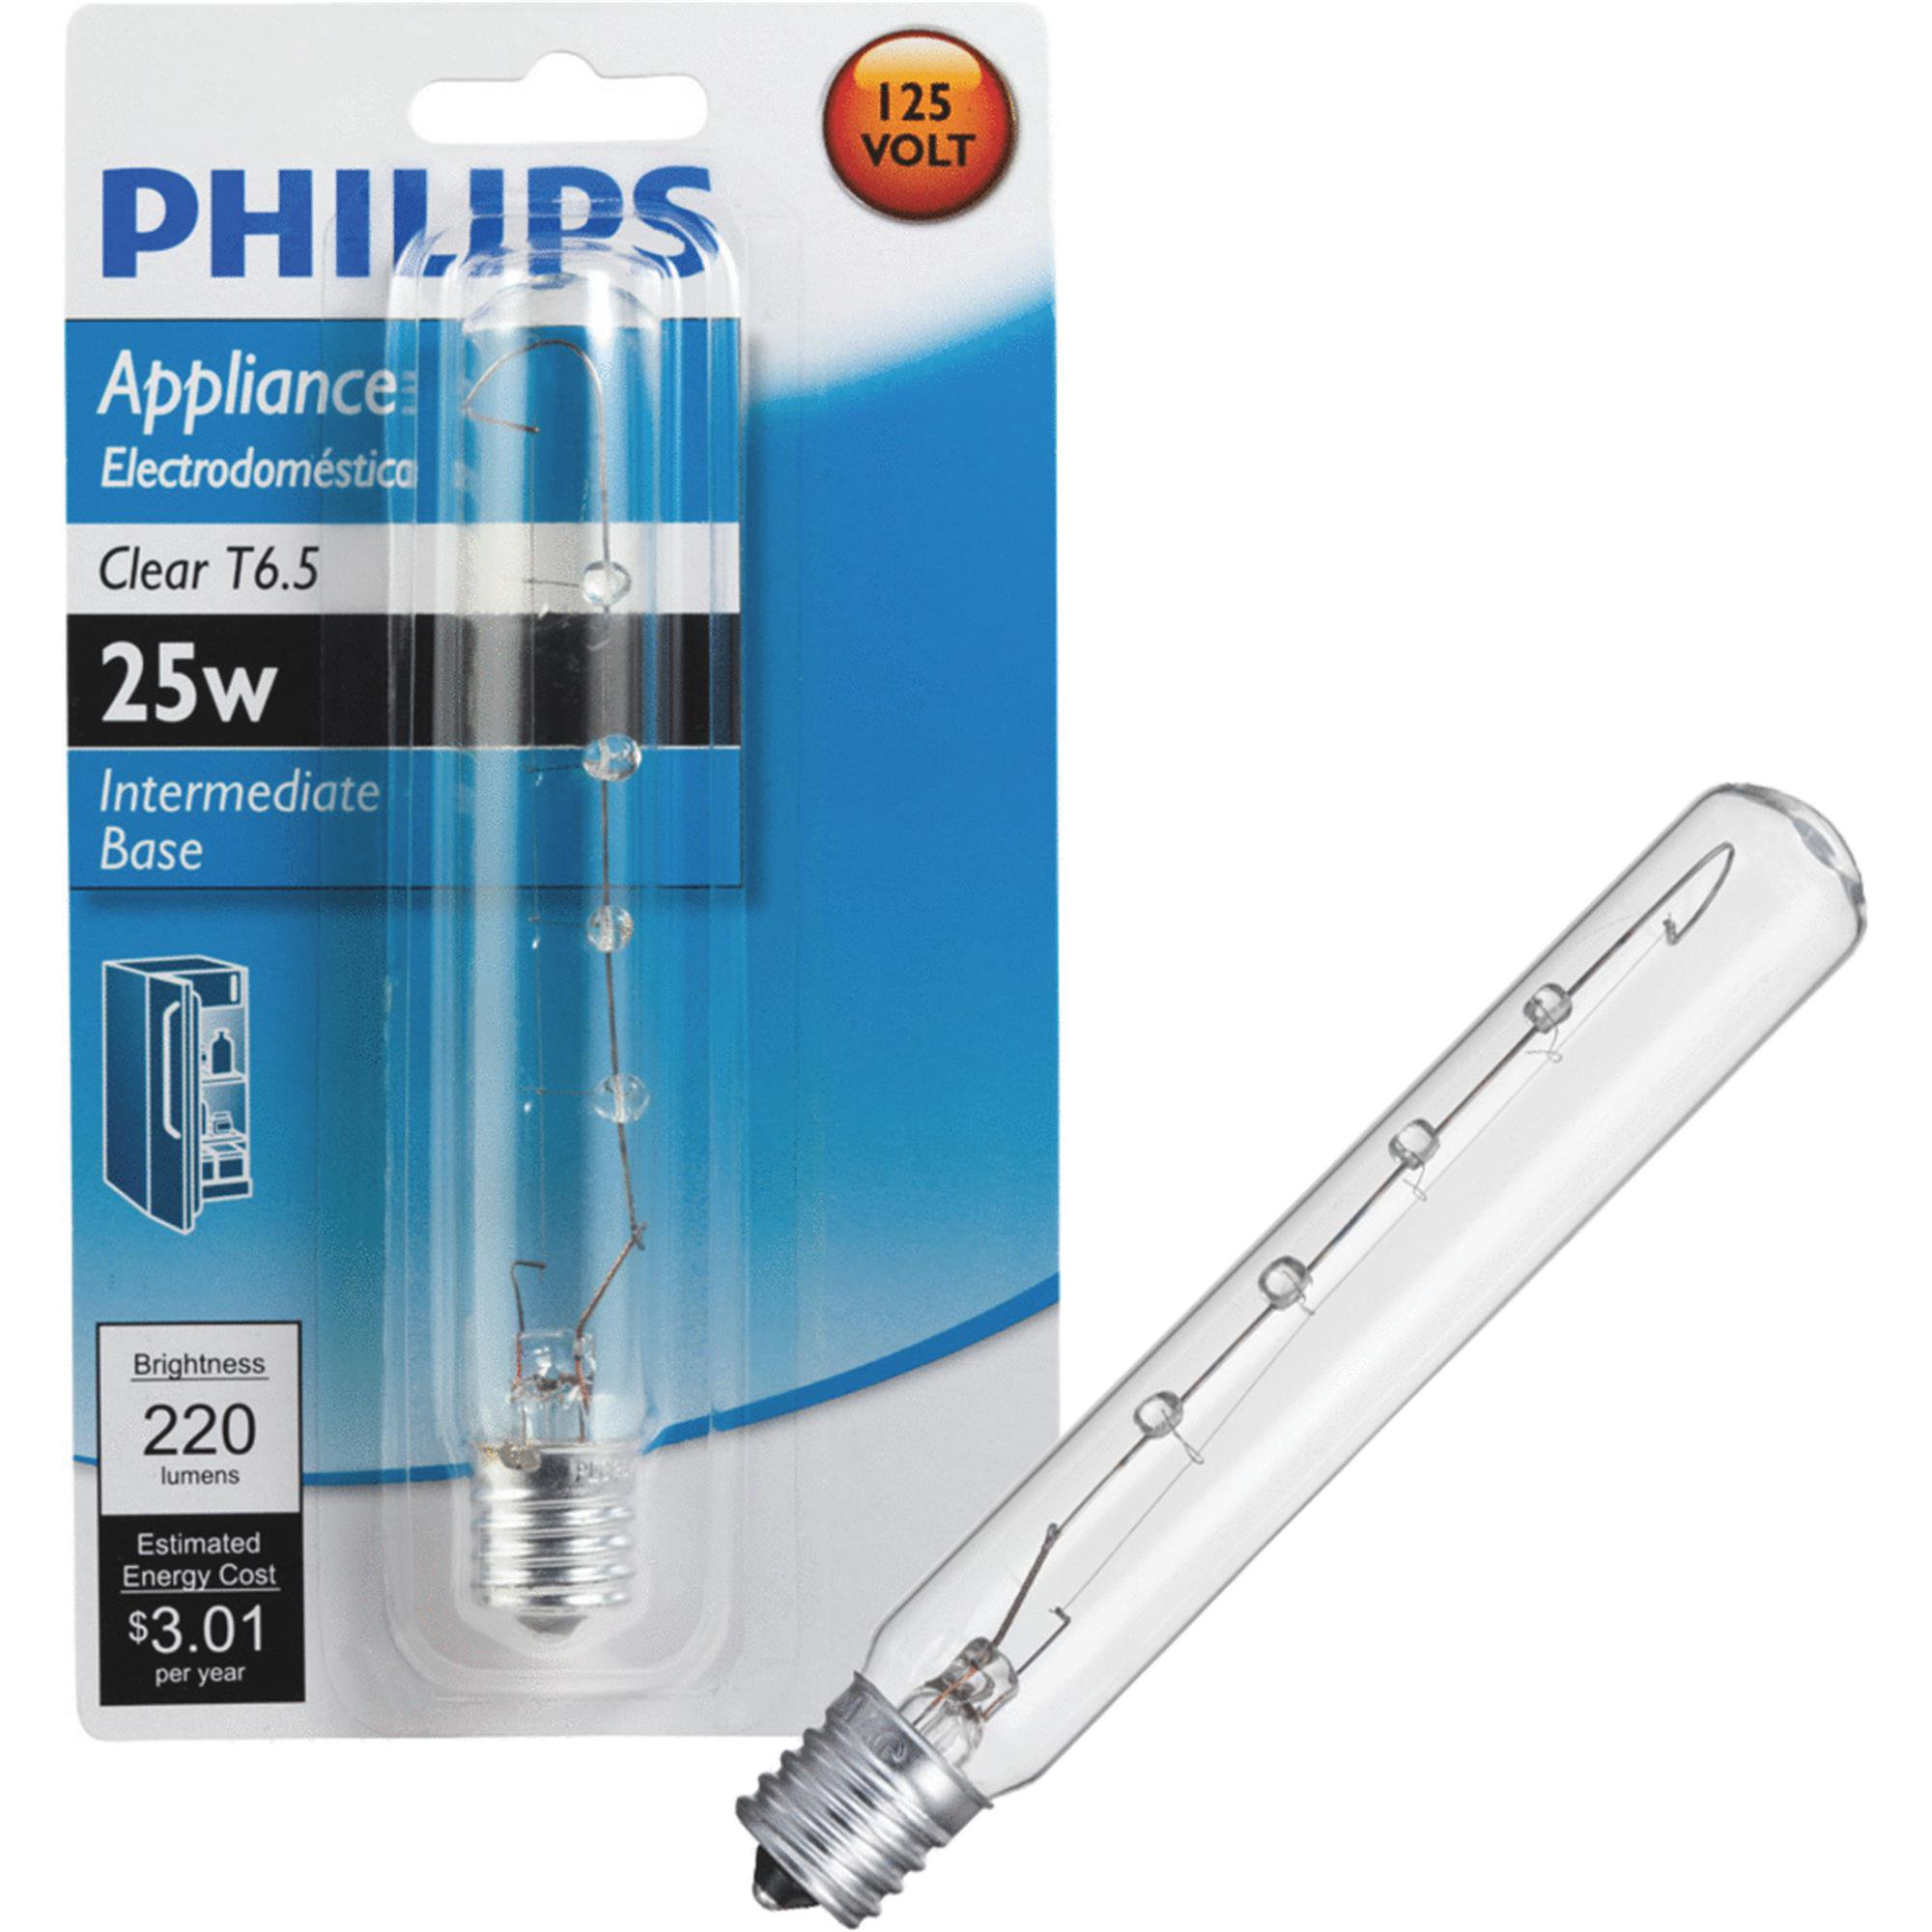 Philips T6.5 Incandescent Appliance Light Bulb